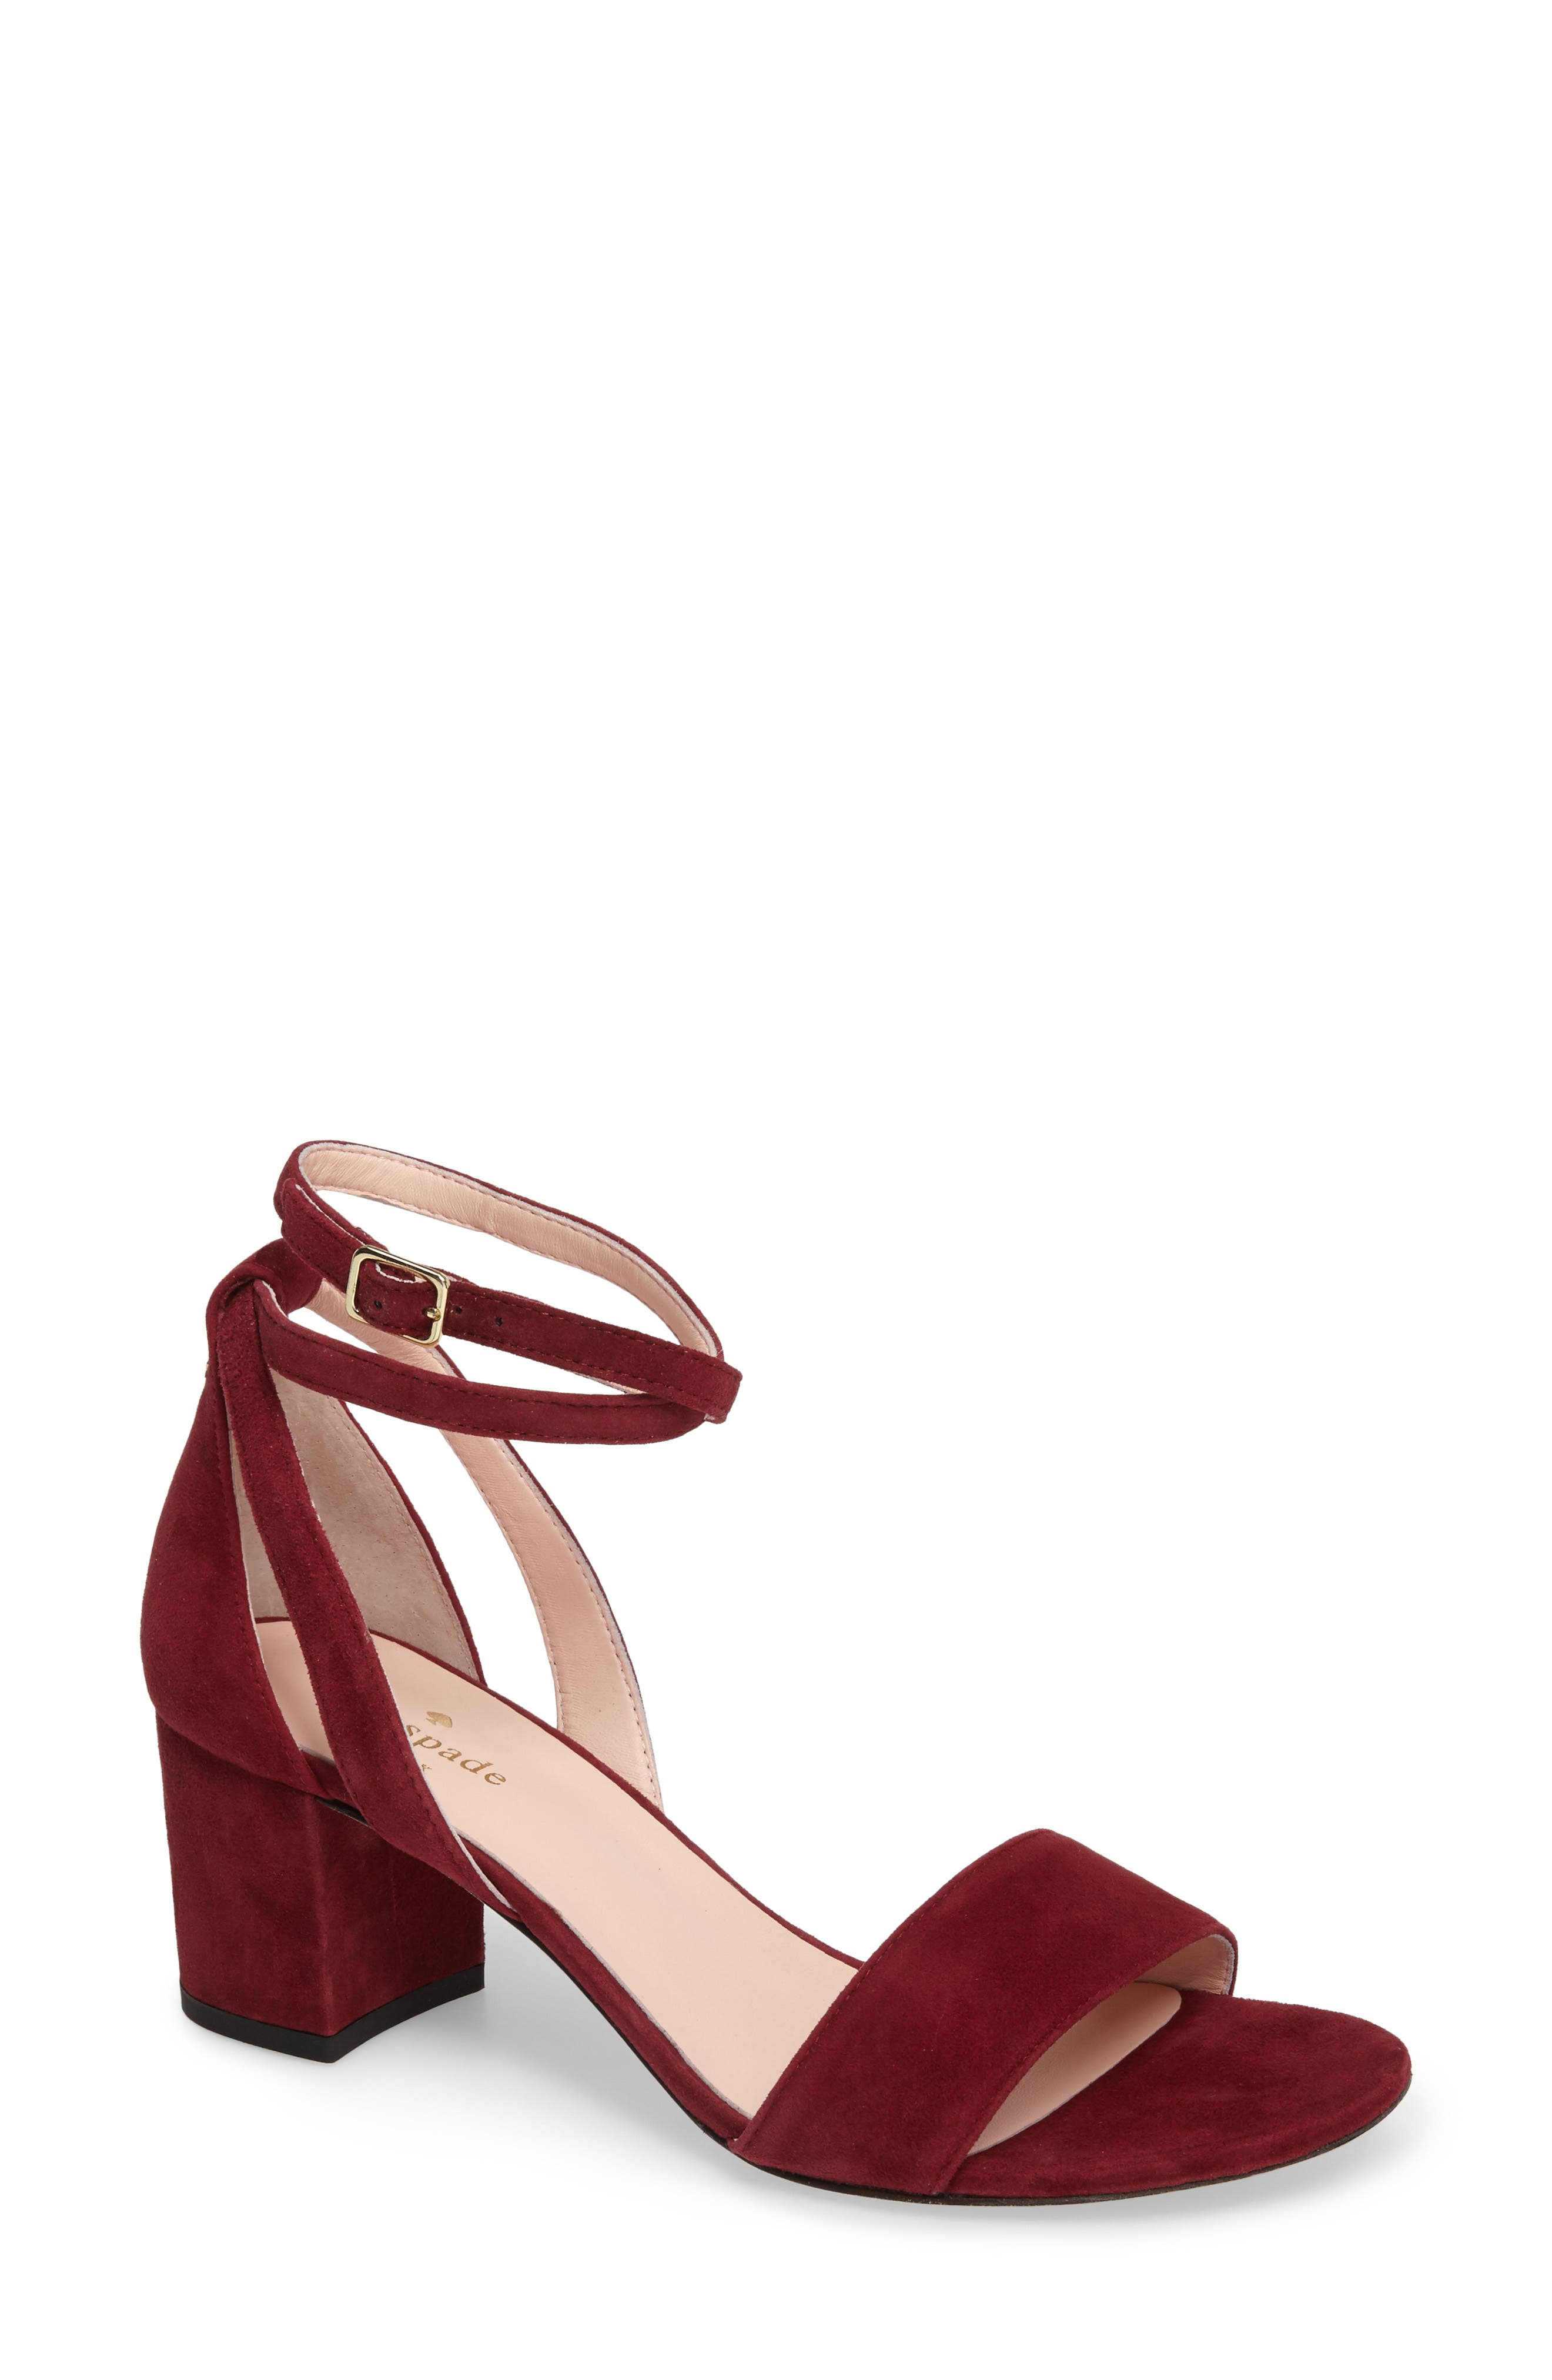 Alternate Image 1 Selected - kate spade new york watson block heel sandal (Women)